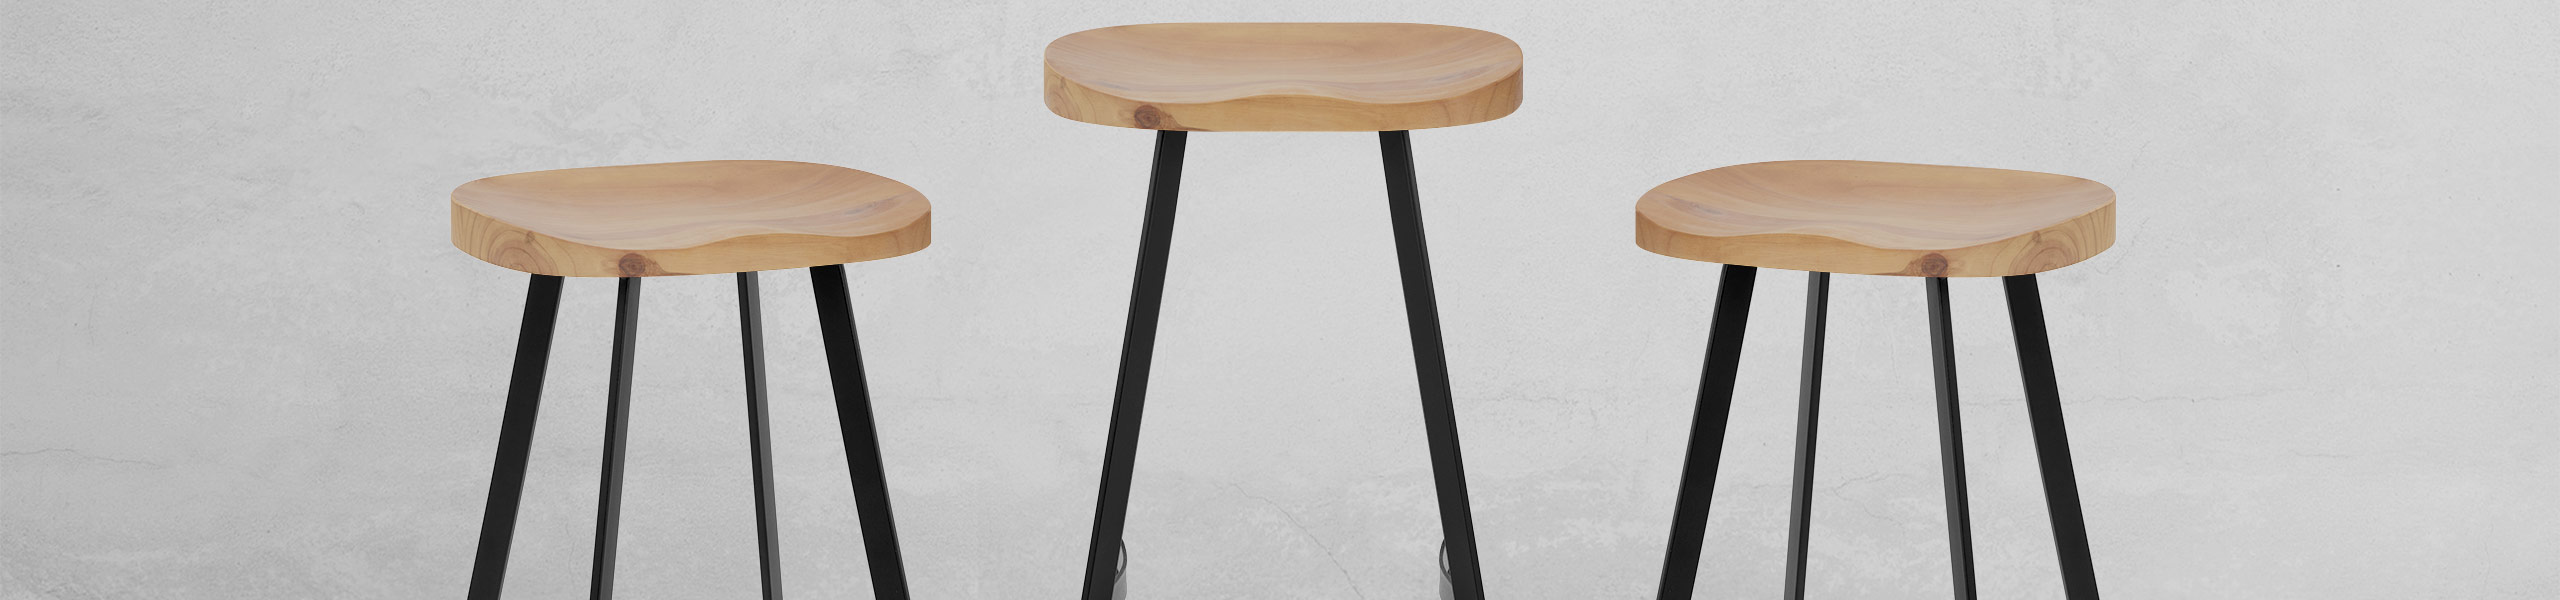 Mulberry Industrial Stool Video Banner